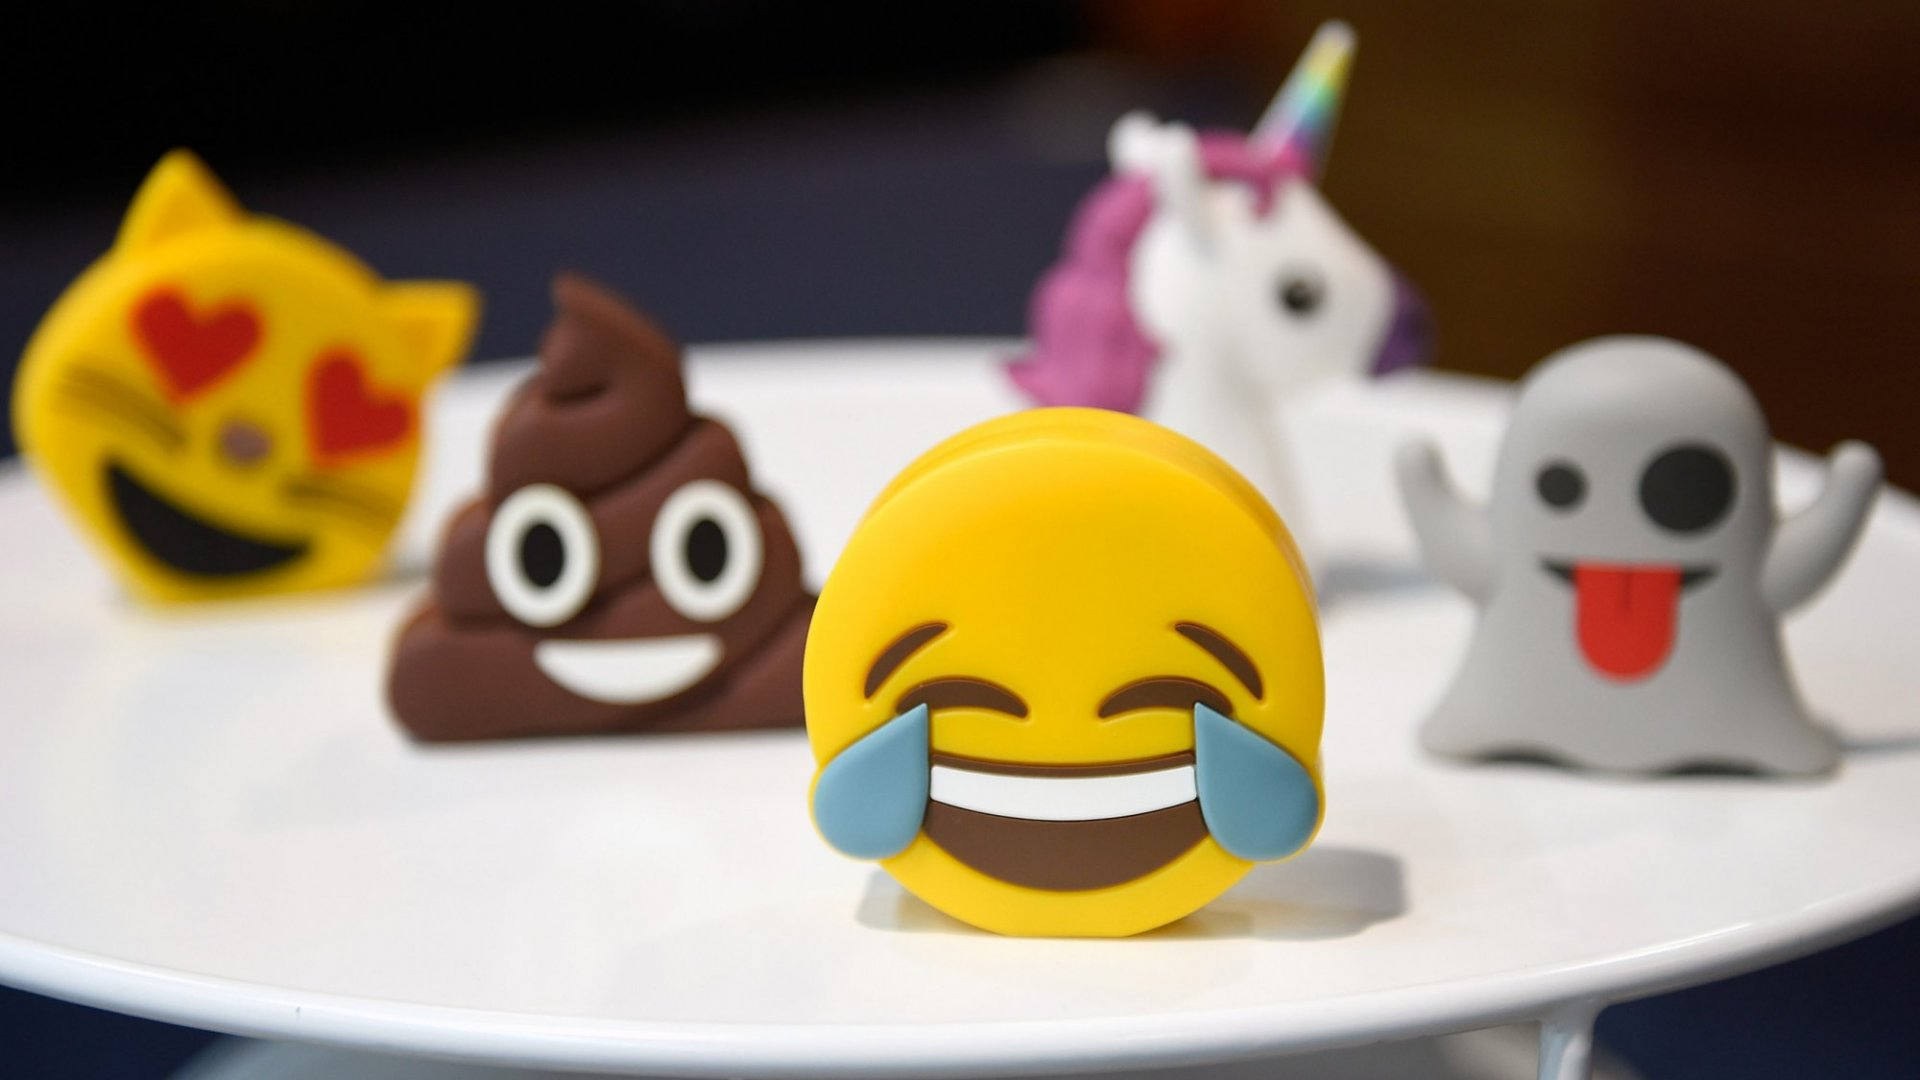 What the World's Most Used Emoji Says About the Way We Communicate Now